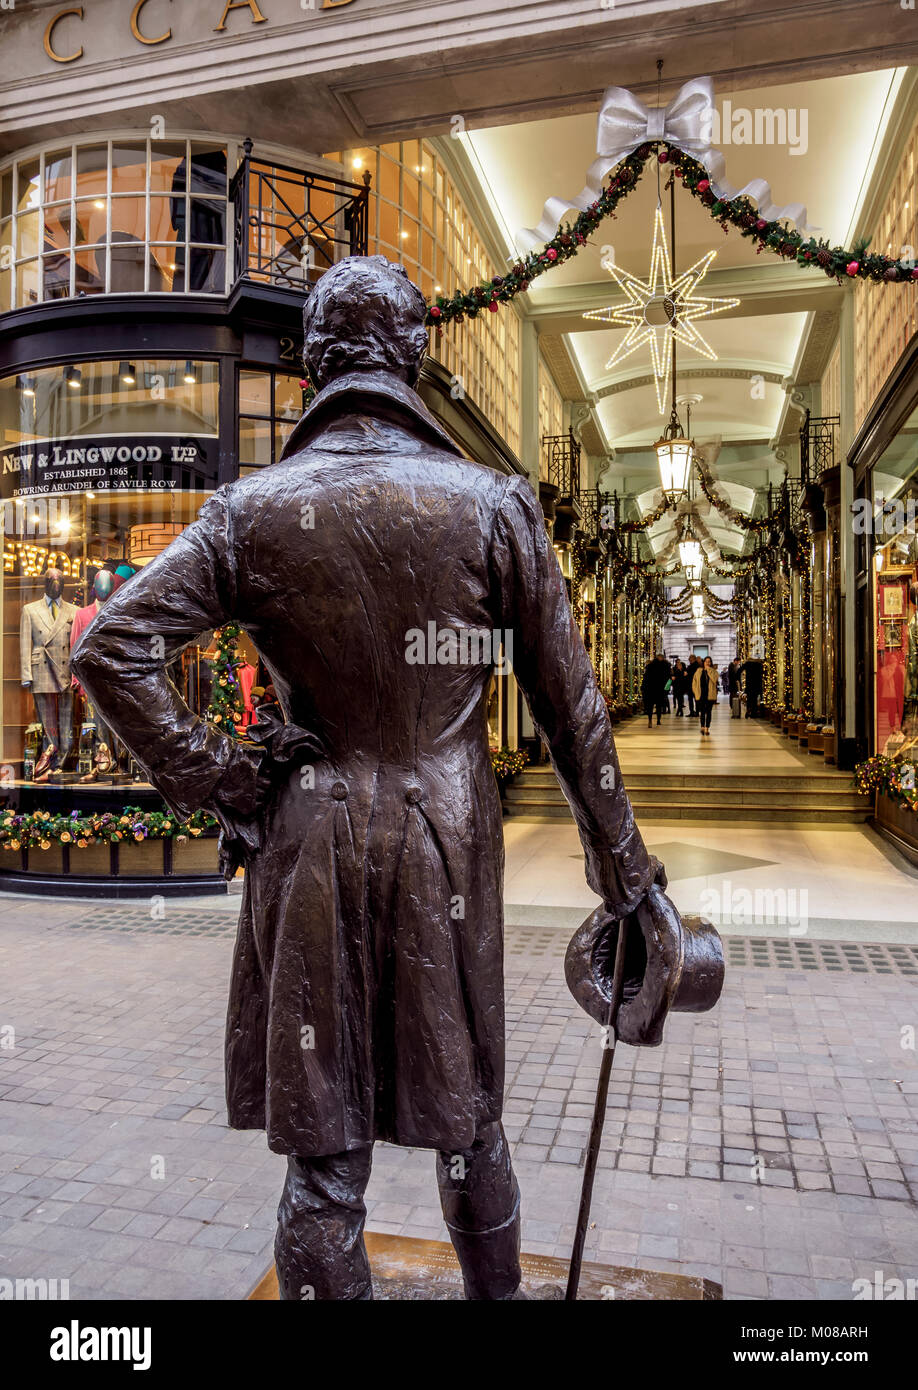 Beau Brummell Monument and Picadilly Arcade, London, England, United Kingdom Stock Photo